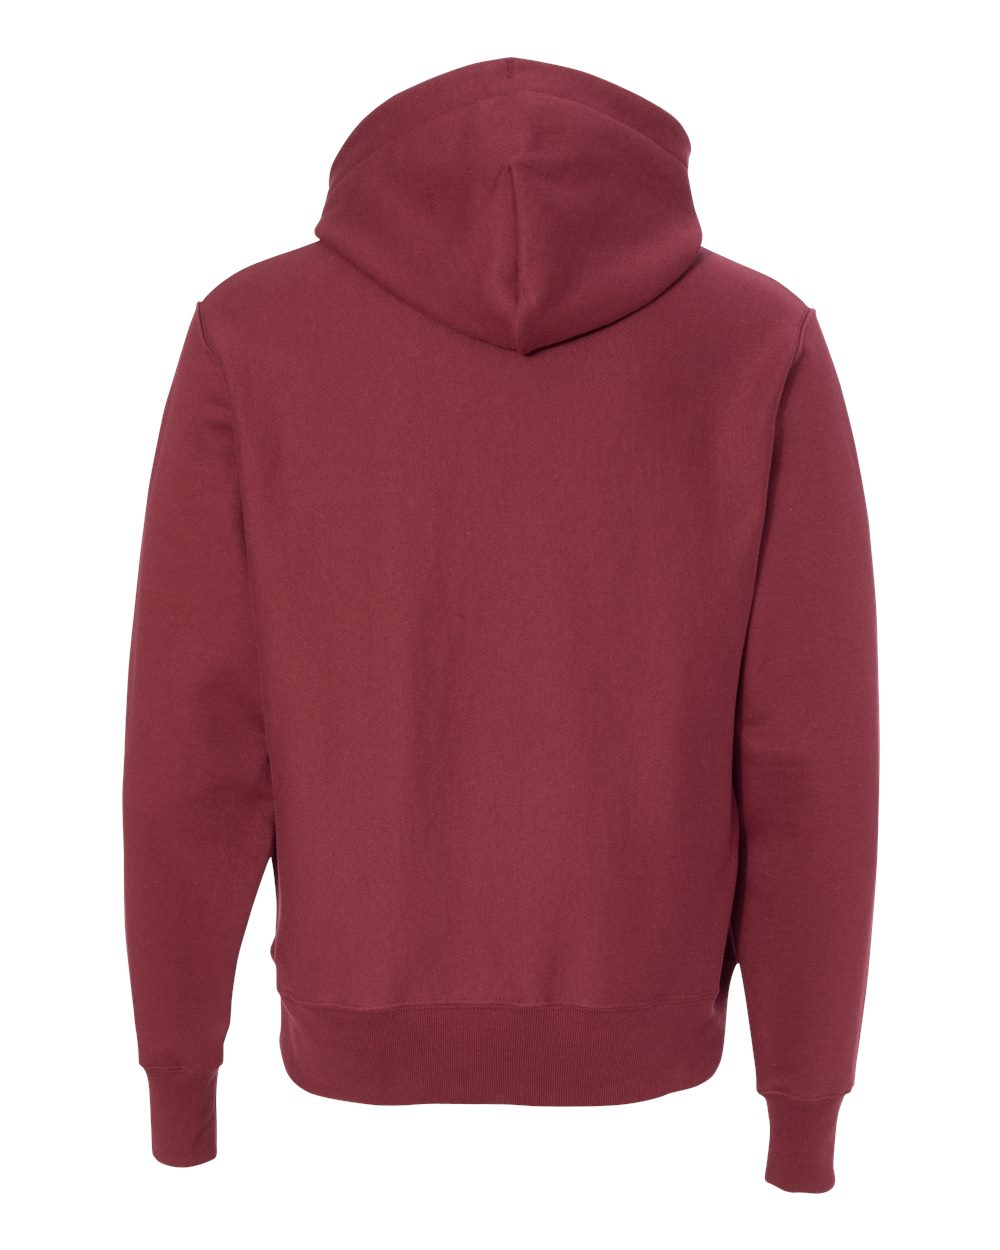 Champion-Mens-Reverse-Weave-Hooded-Pullover-Sweatshirt-S101-up-to-3XL thumbnail 19